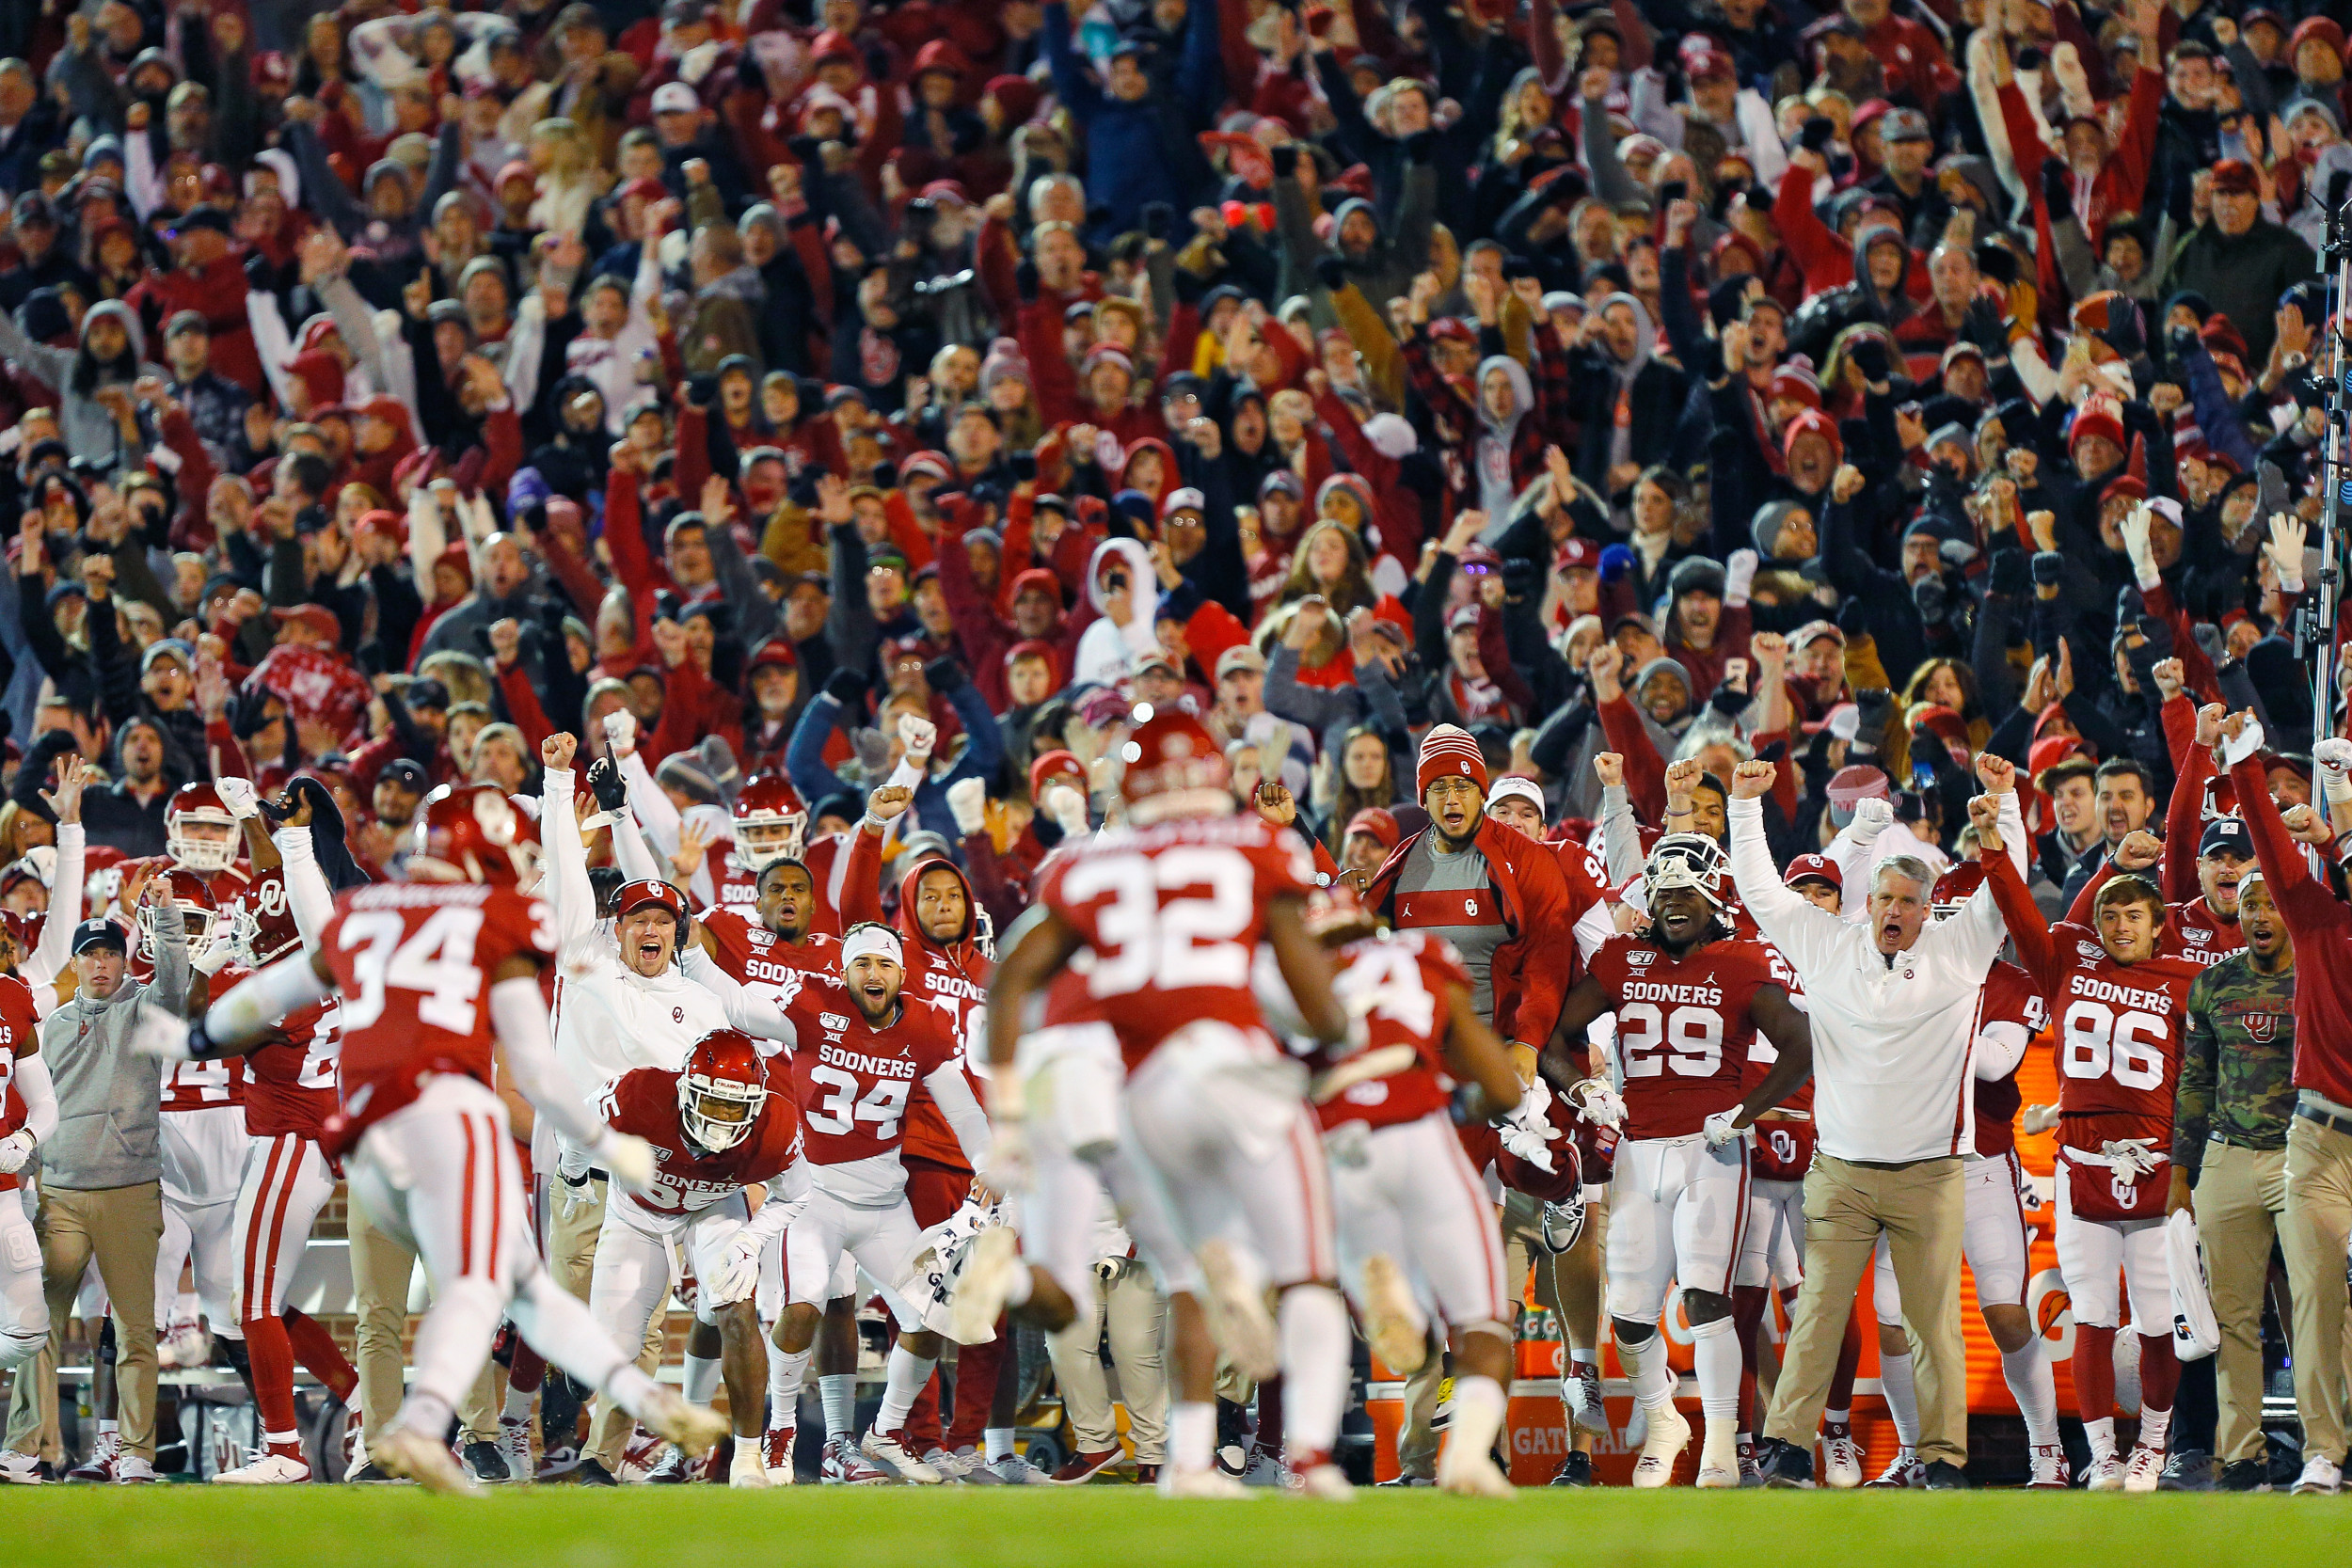 College Football Tv Schedule 2019 Where To Watch Oklahoma